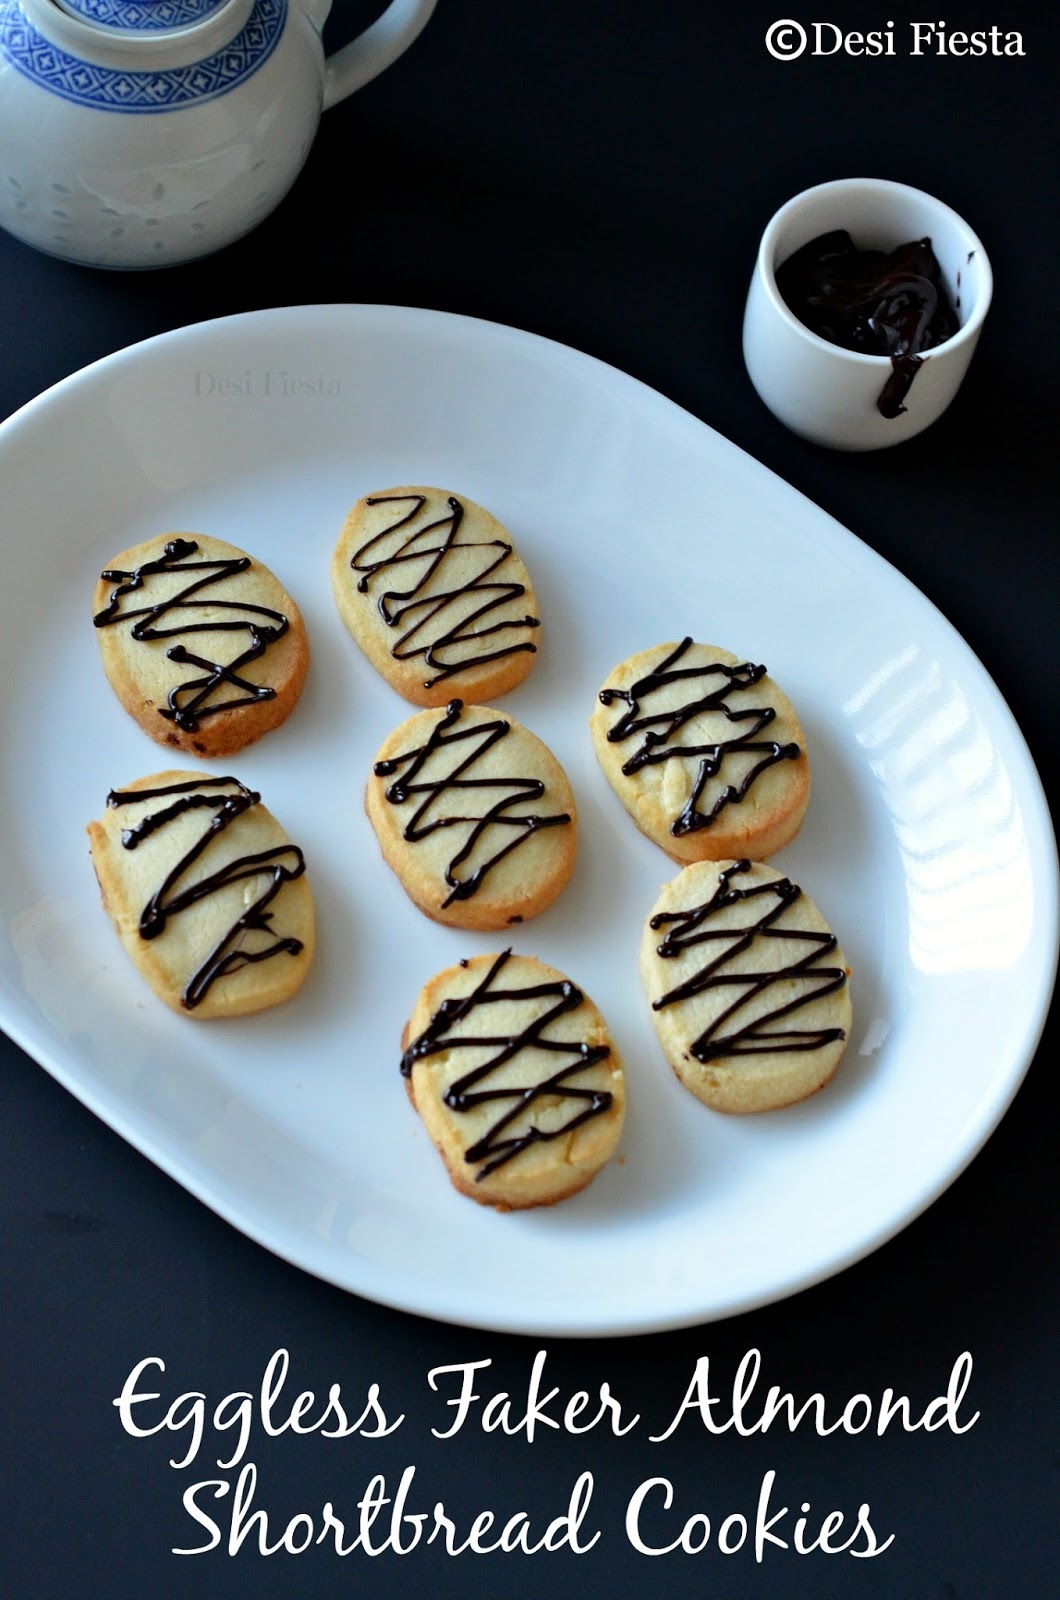 Eggless Faker Almond Shortbread Cookies